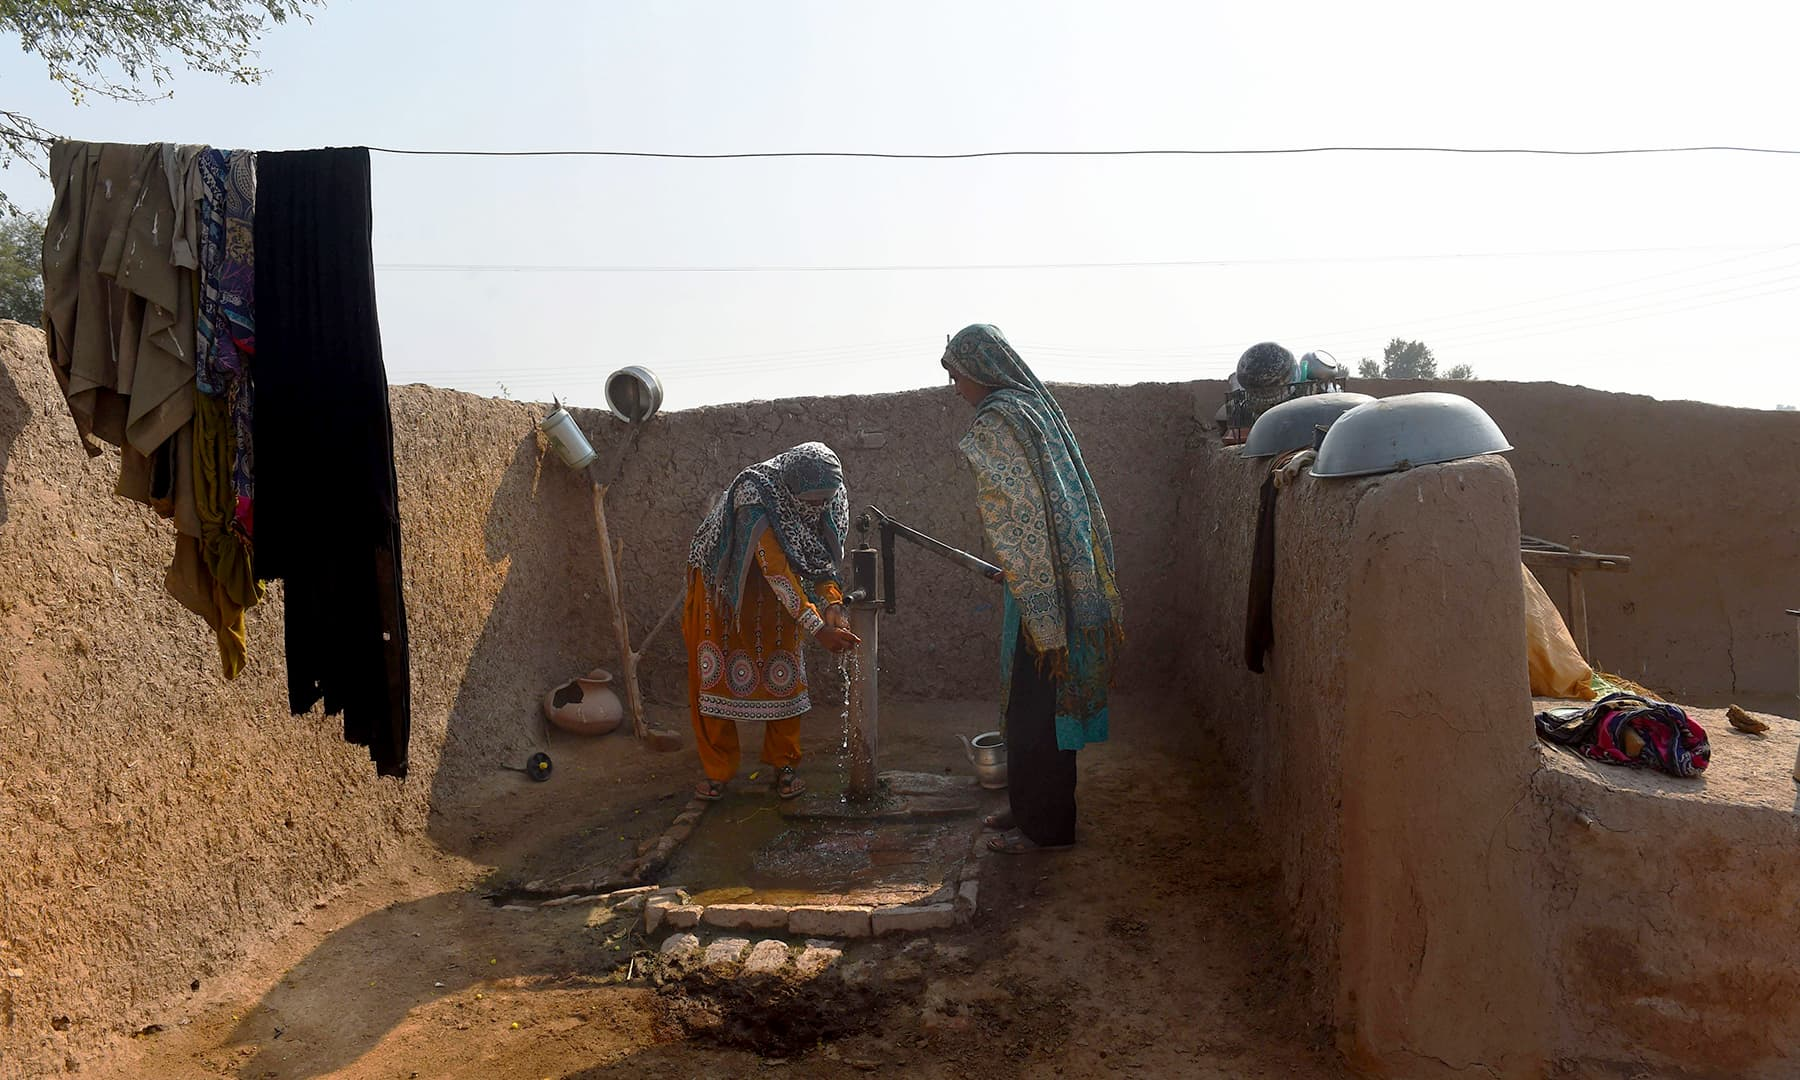 A woman washes her hands at a hand pump next to the toilet. —AFP